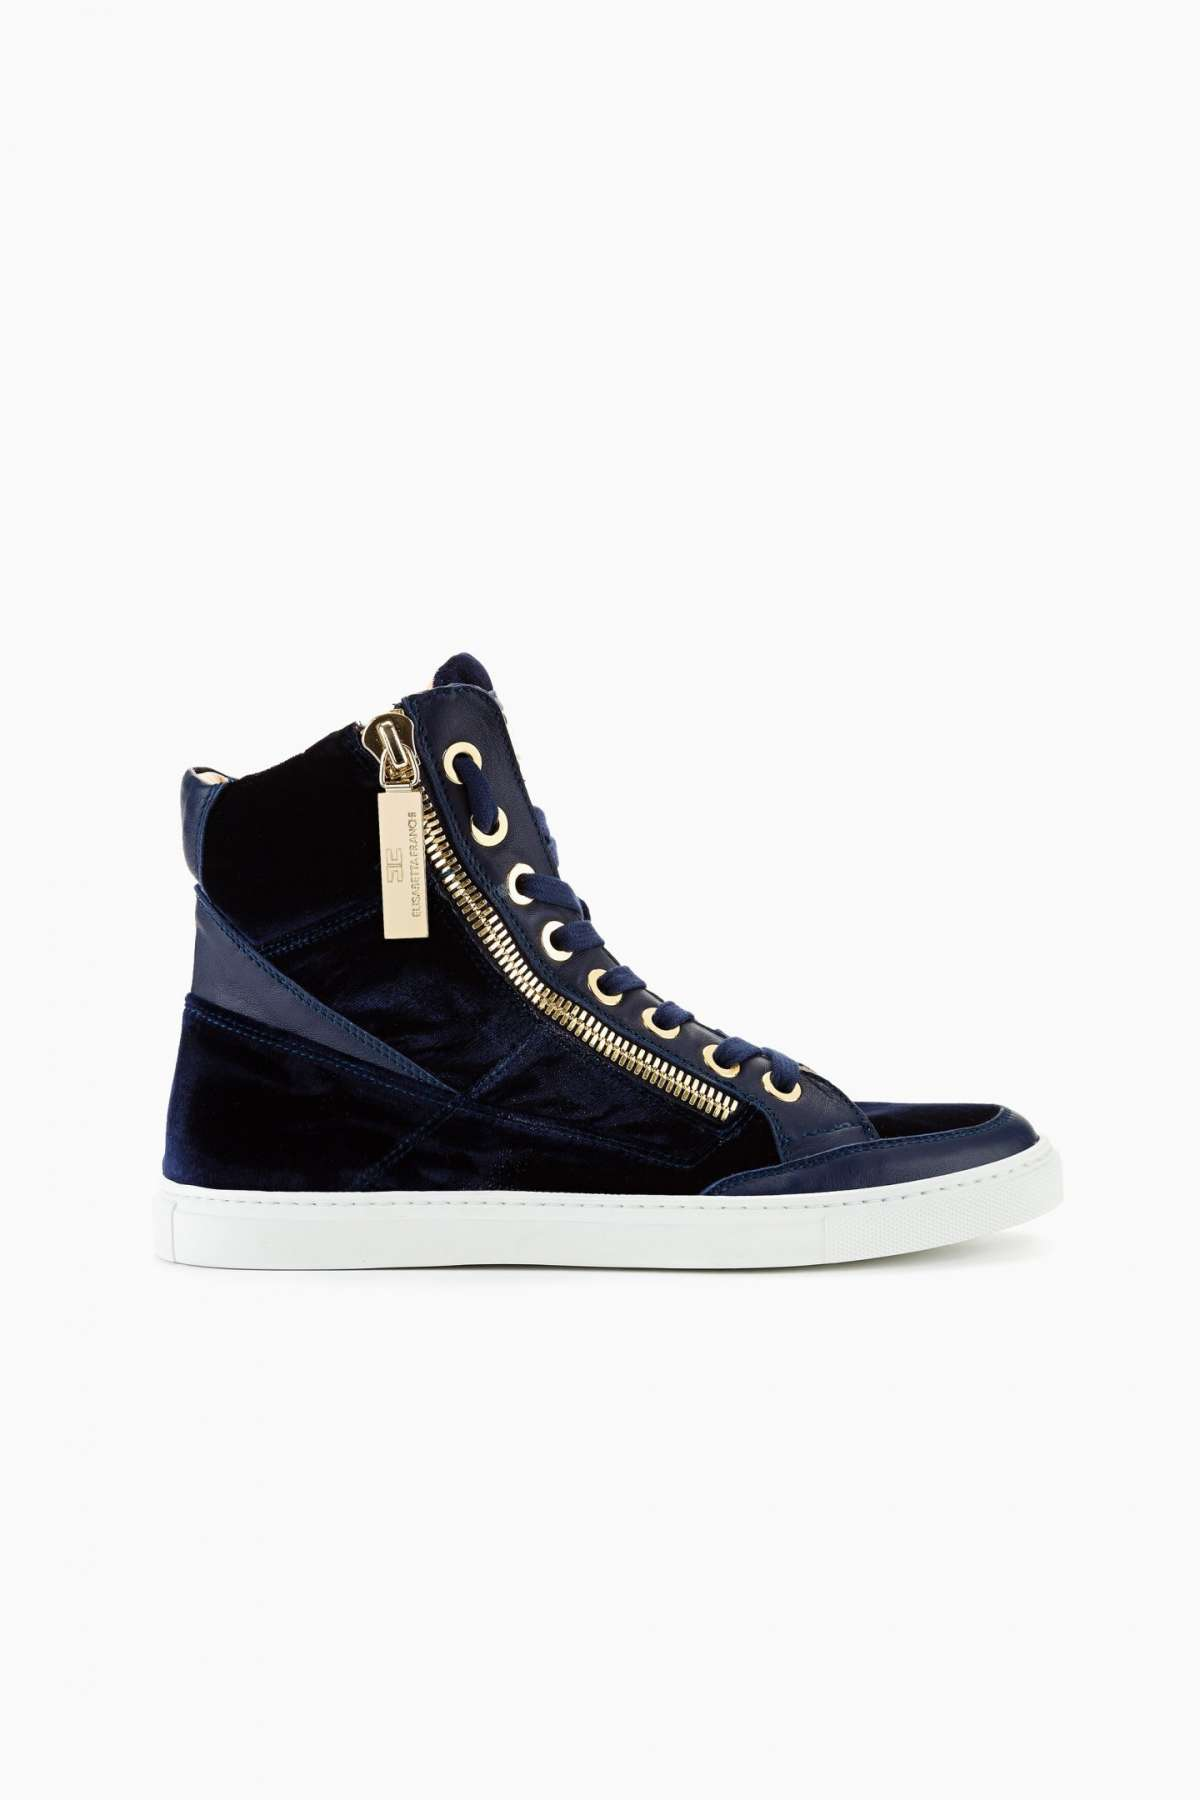 Sneakers in velluto blu con zip oro